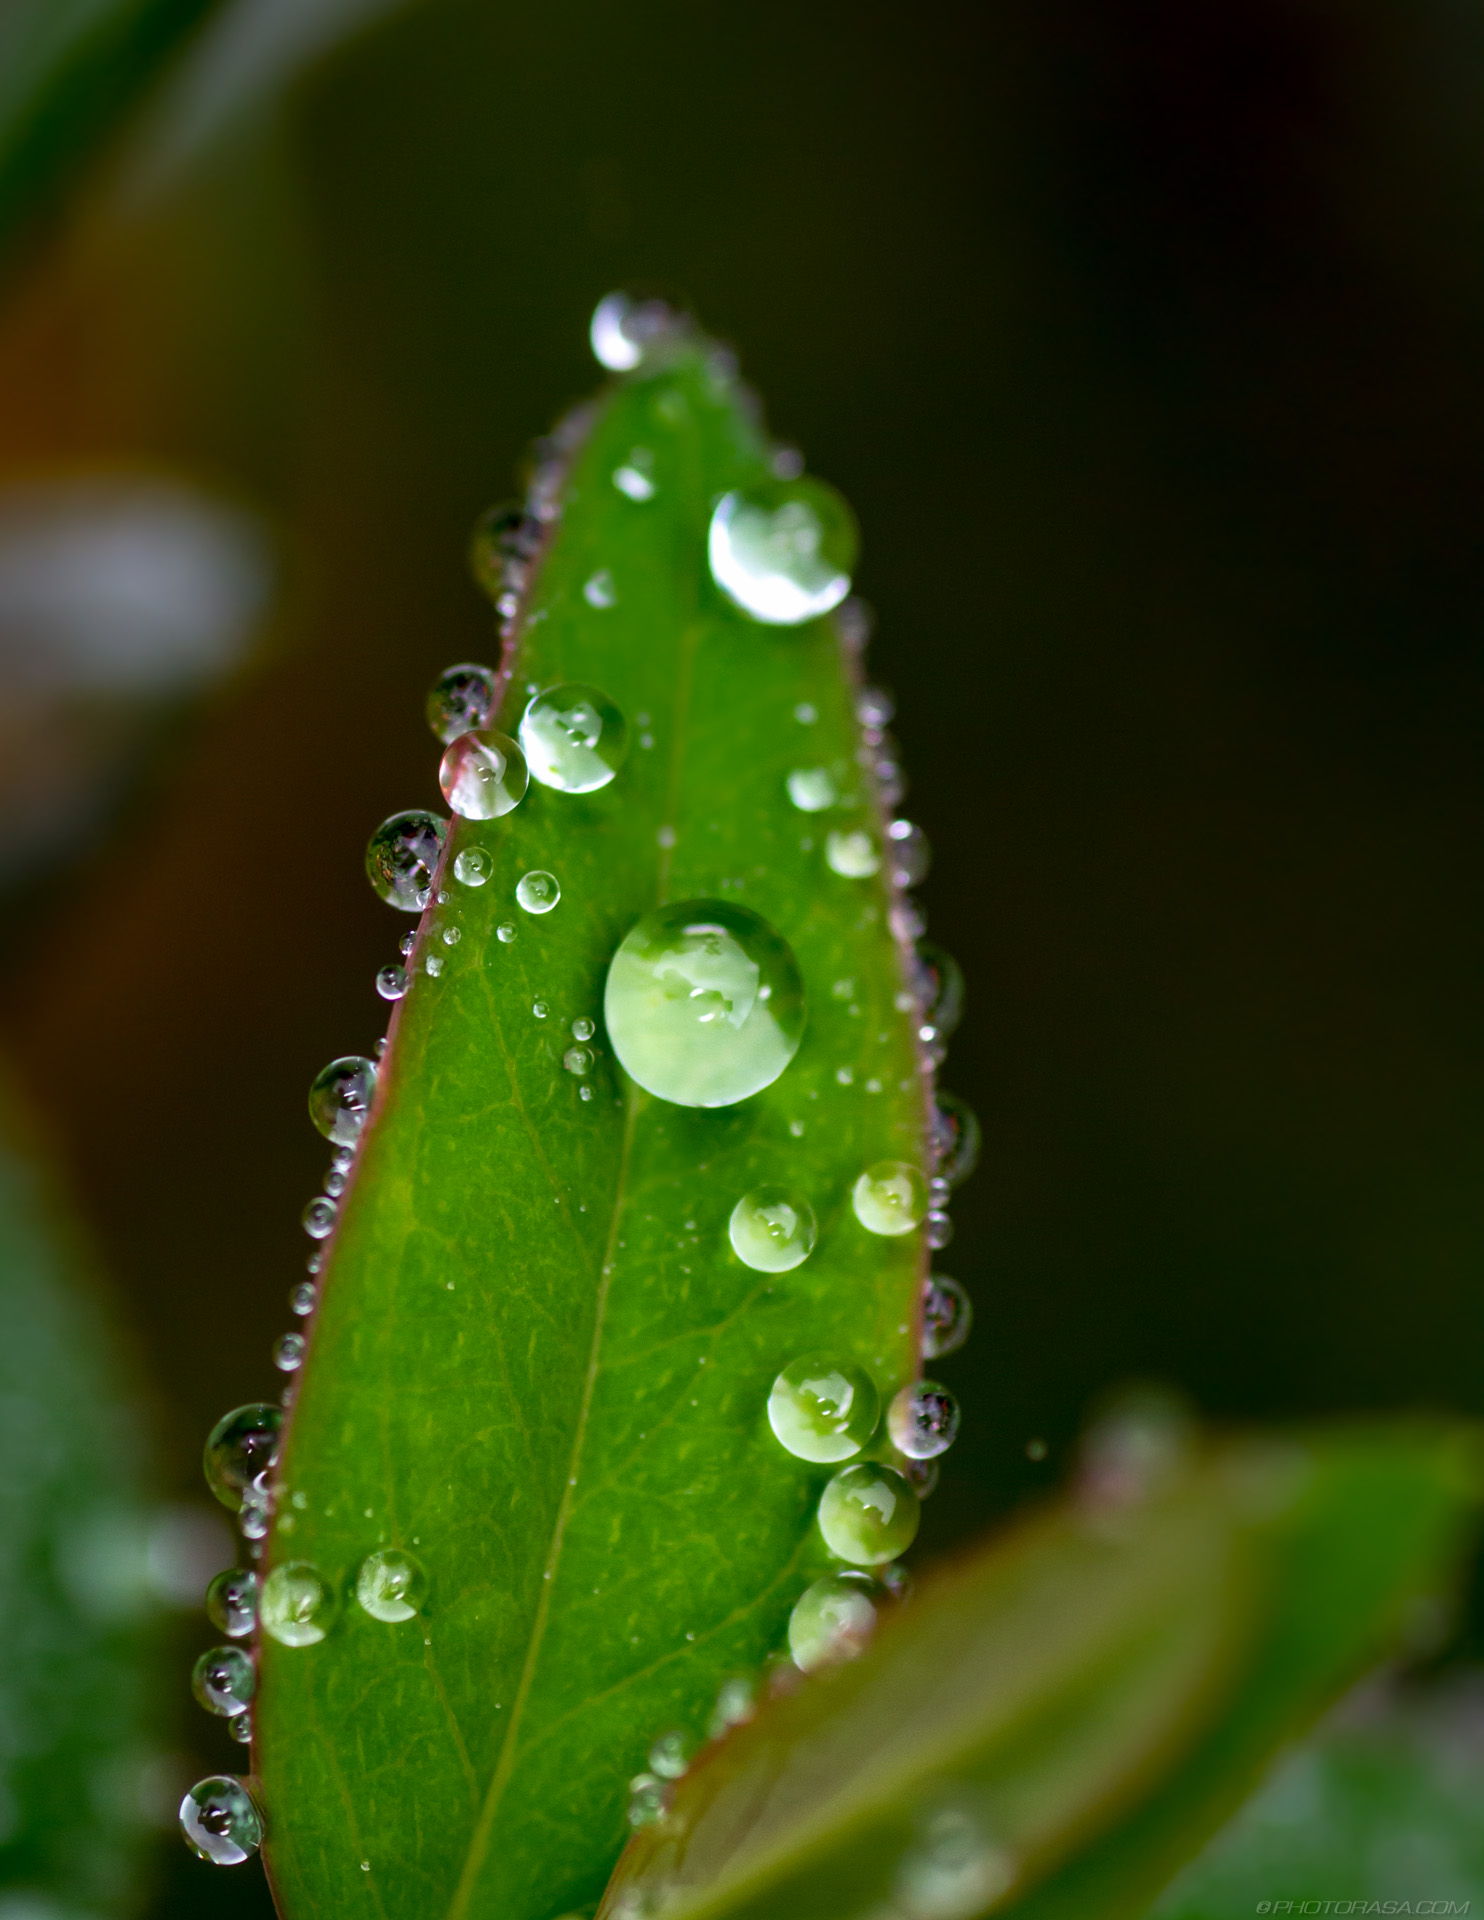 http://photorasa.com/nature/dewdrops-tiny-leaves/attachment/dewdrops-on-leaf/